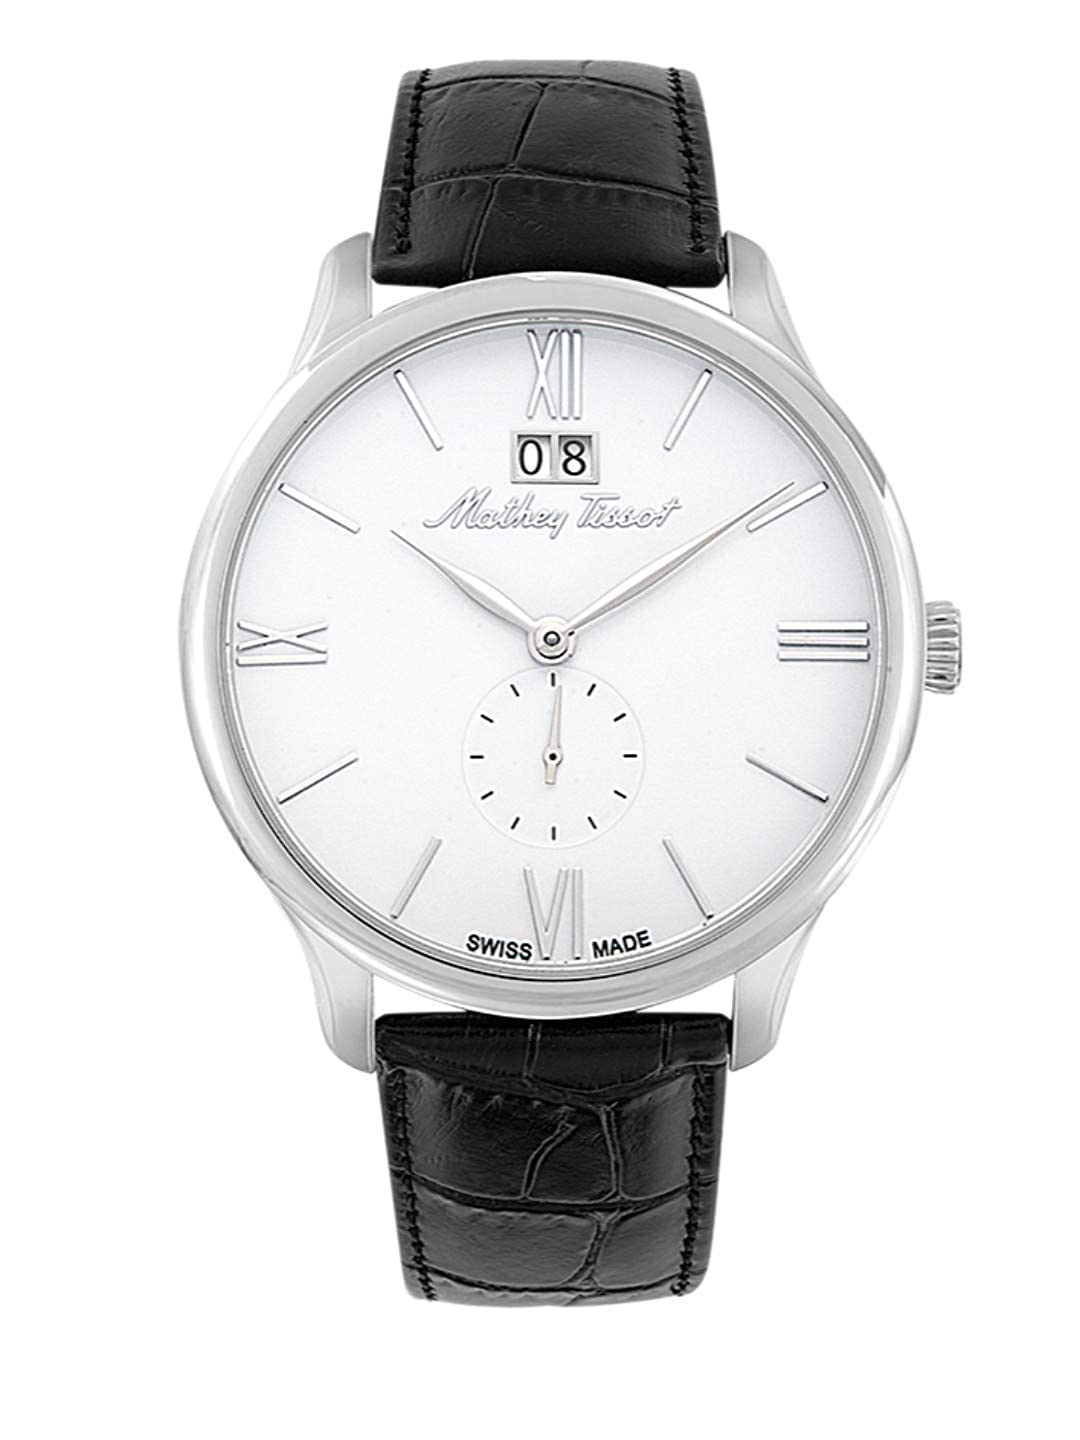 Mathey Tissot Analog Silver Dial Mens Watch H1886QAI